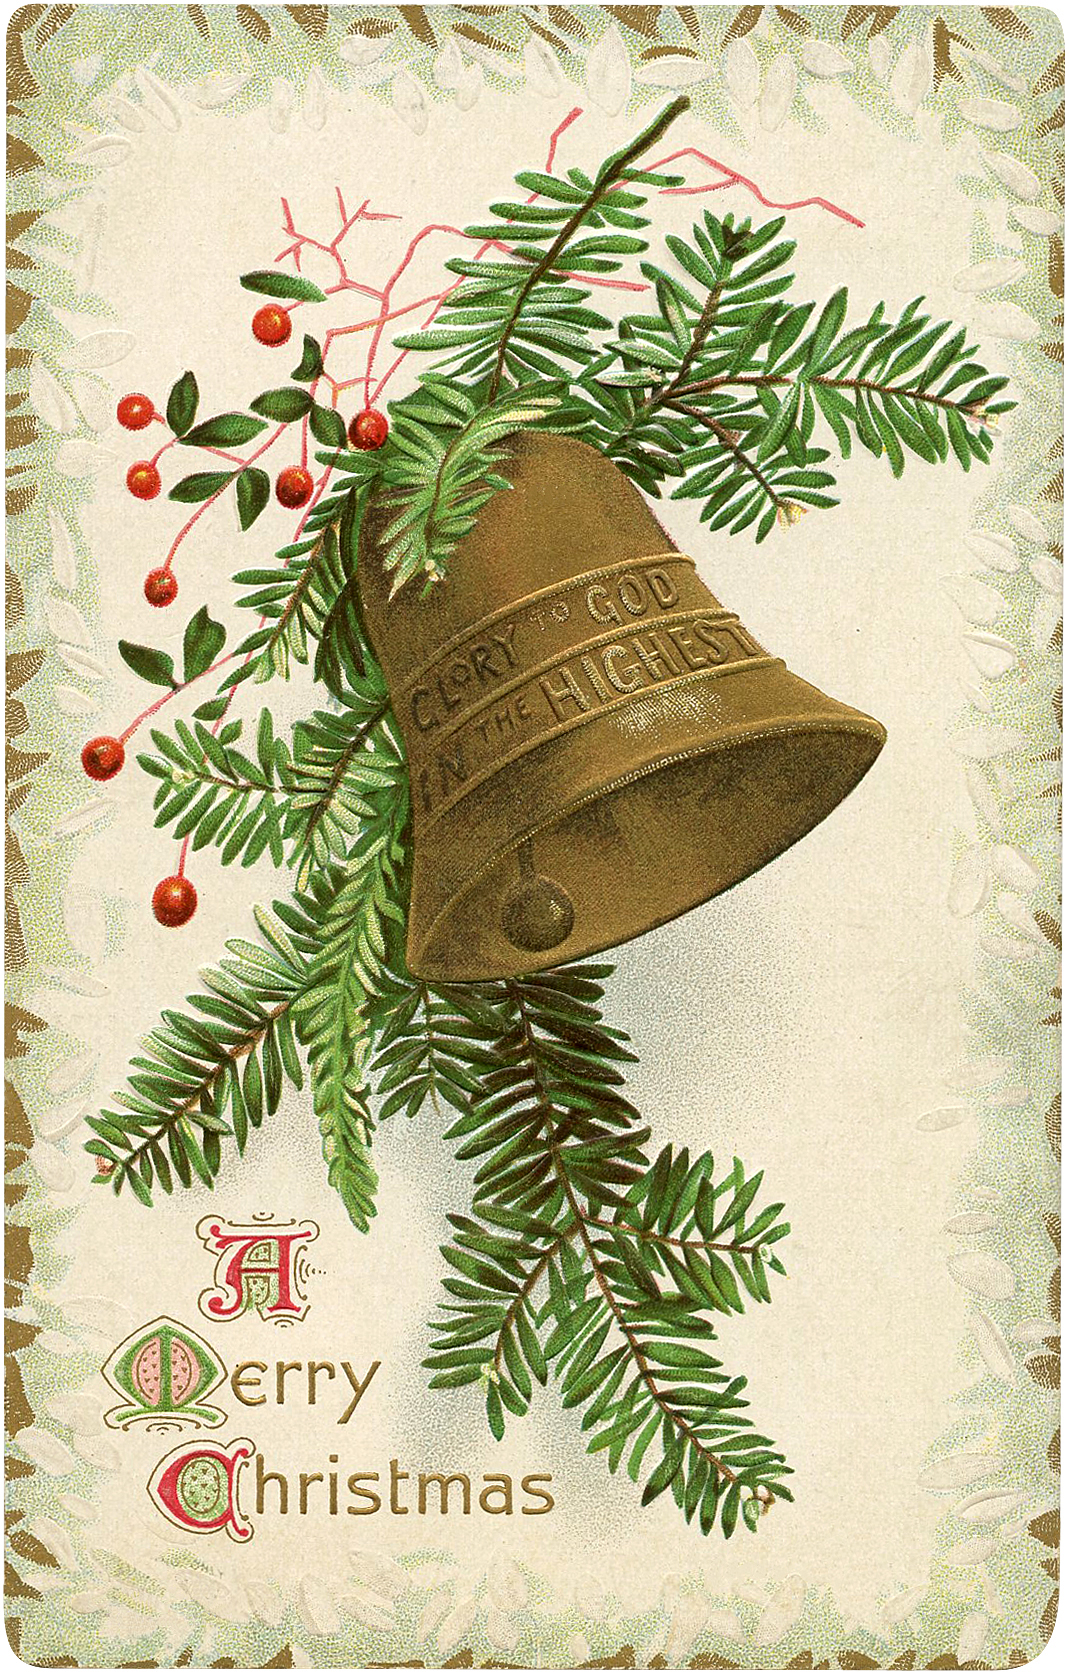 4 Christmas Bell Images The Graphics Fairy